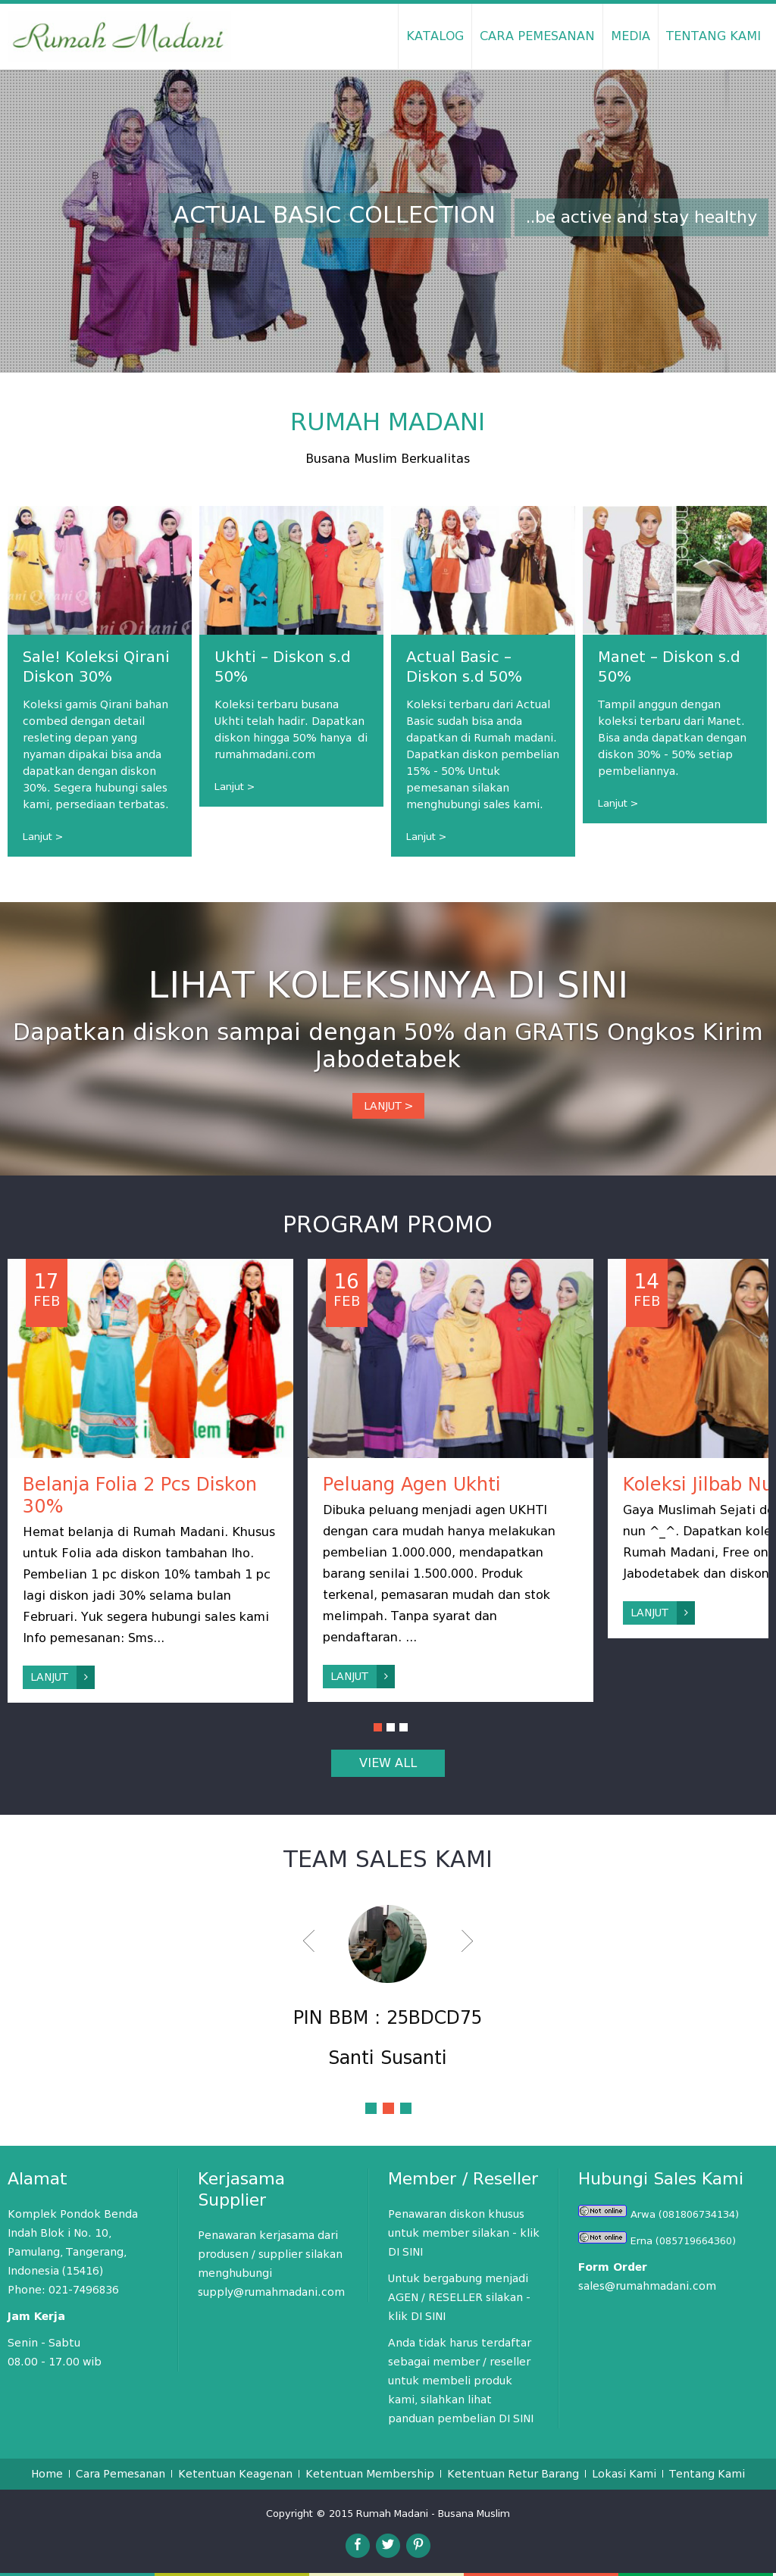 rumah madani busana muslim s competitors revenue number of employees funding acquisitions news owler company profile rumah madani busana muslim s